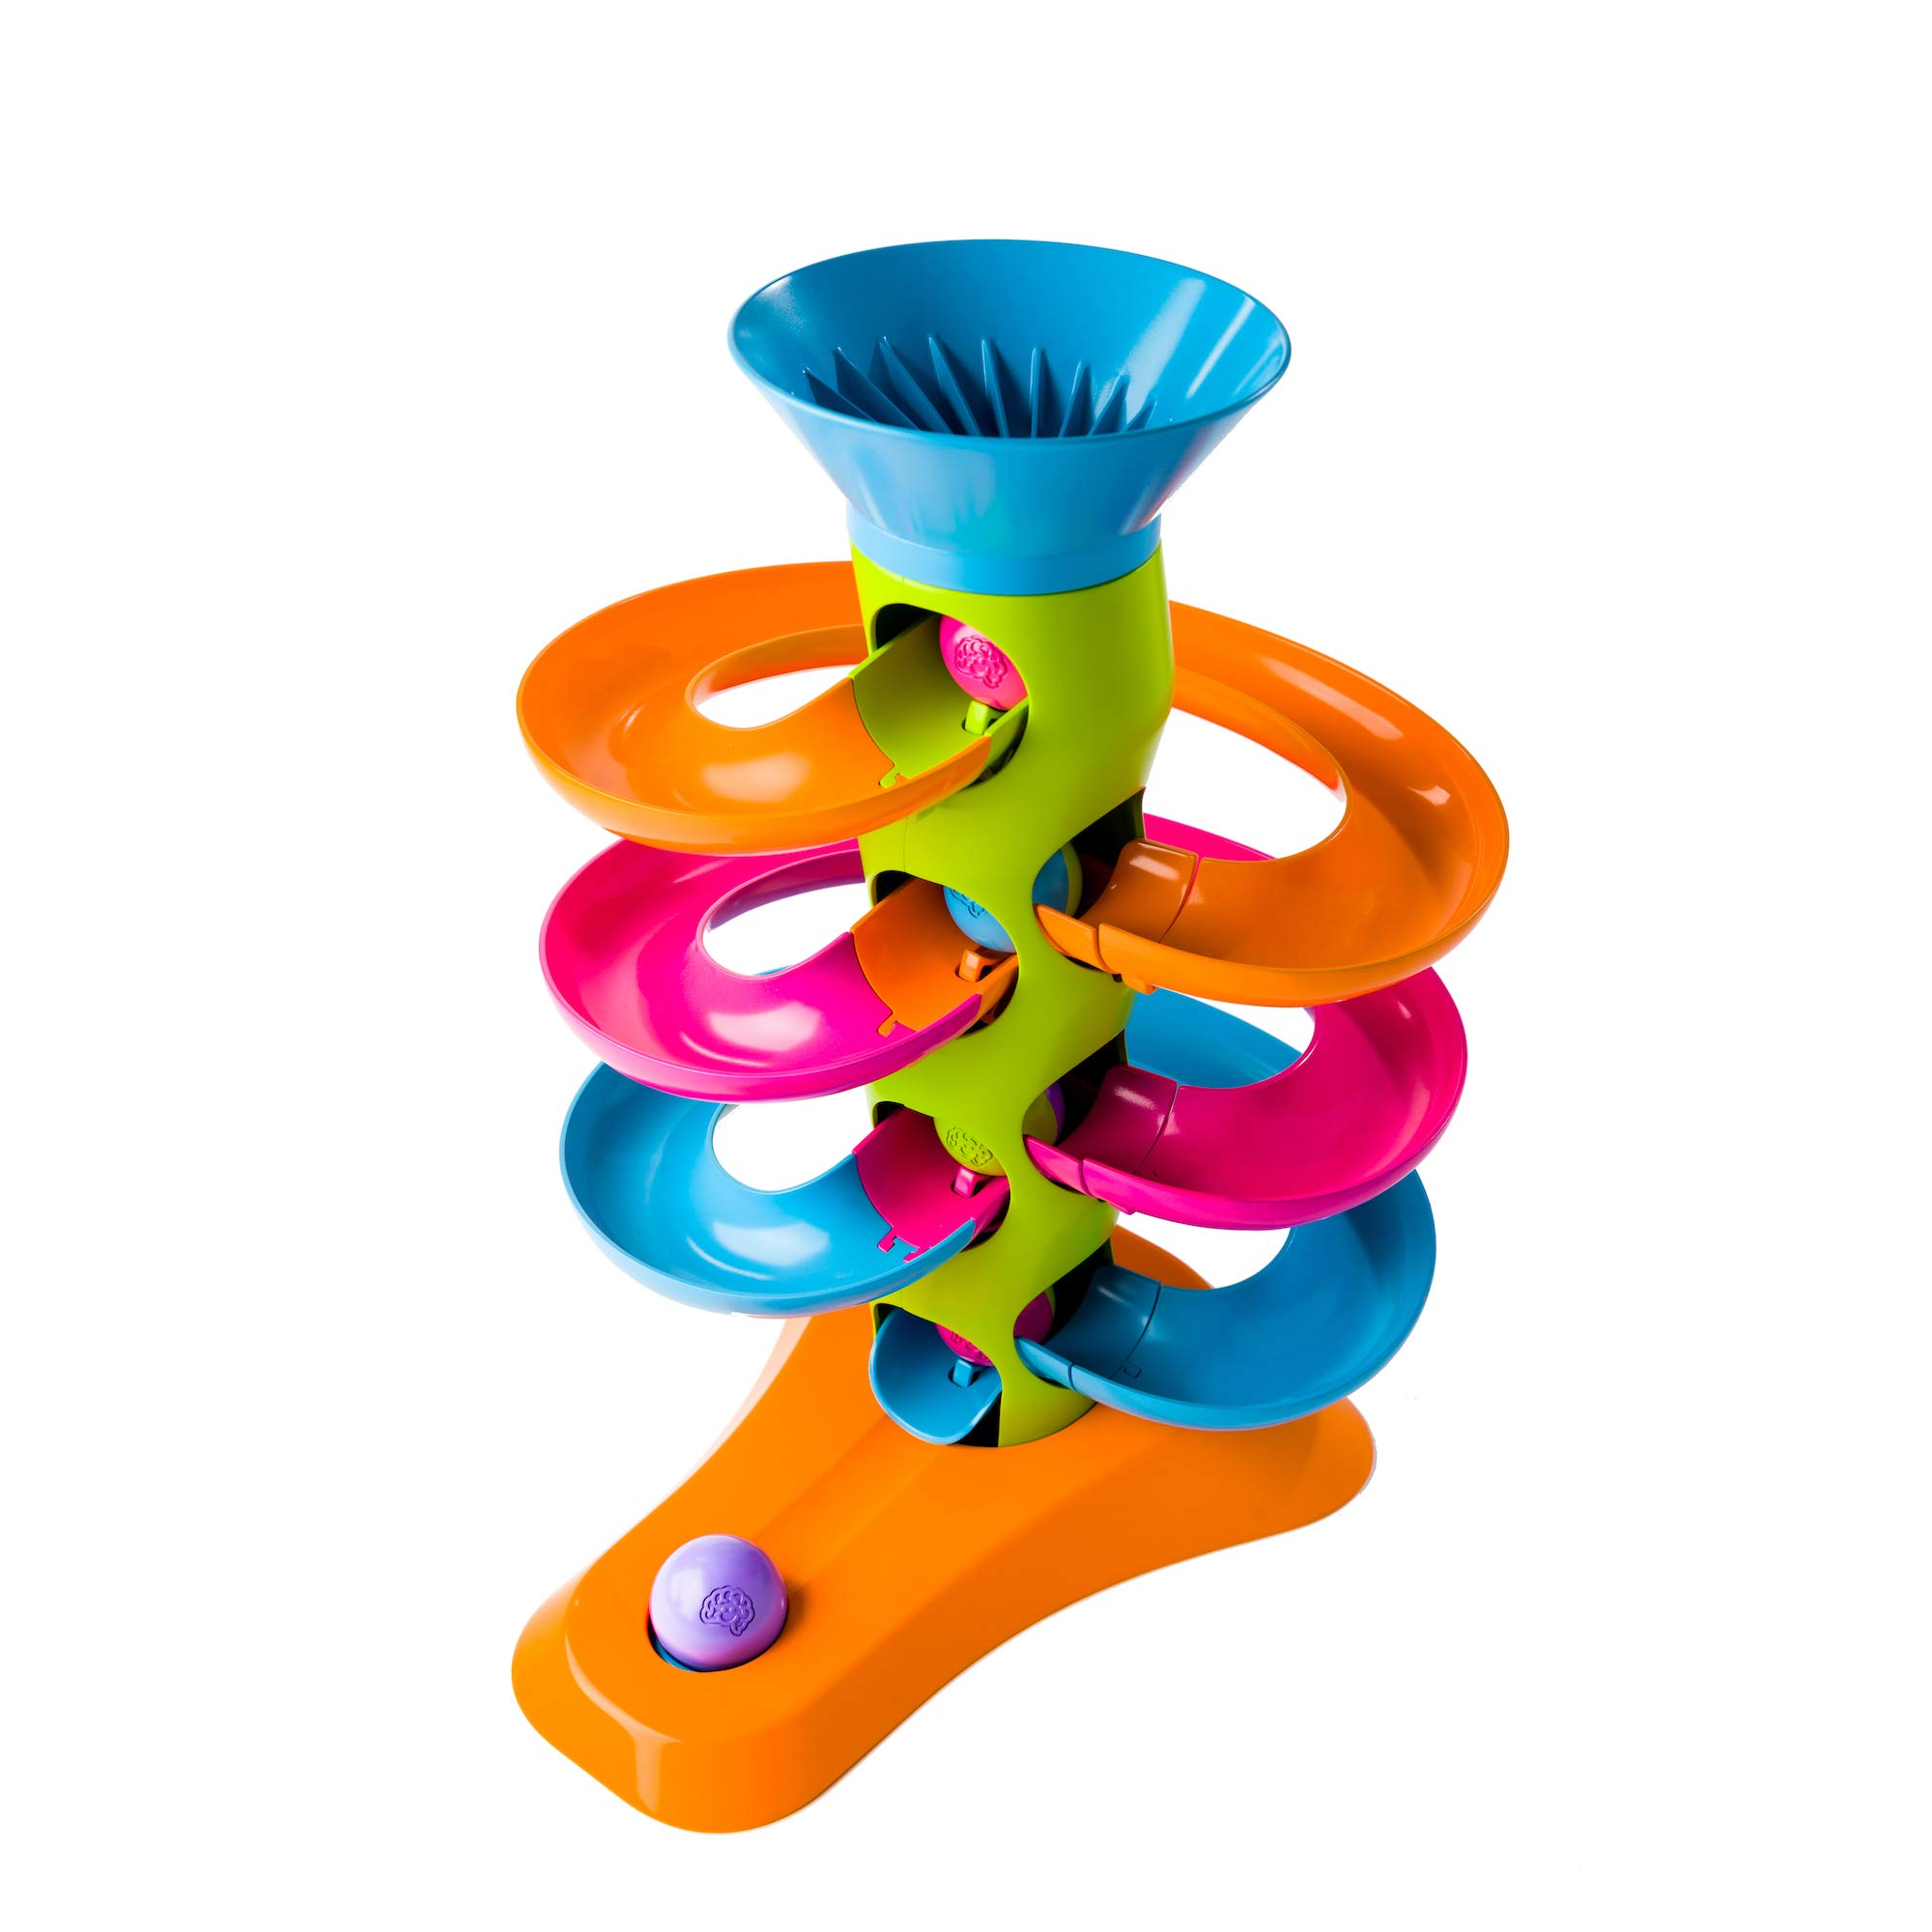 Fat Brain Toys RollAgain Tower by Fat Brain Toys (Image #1)